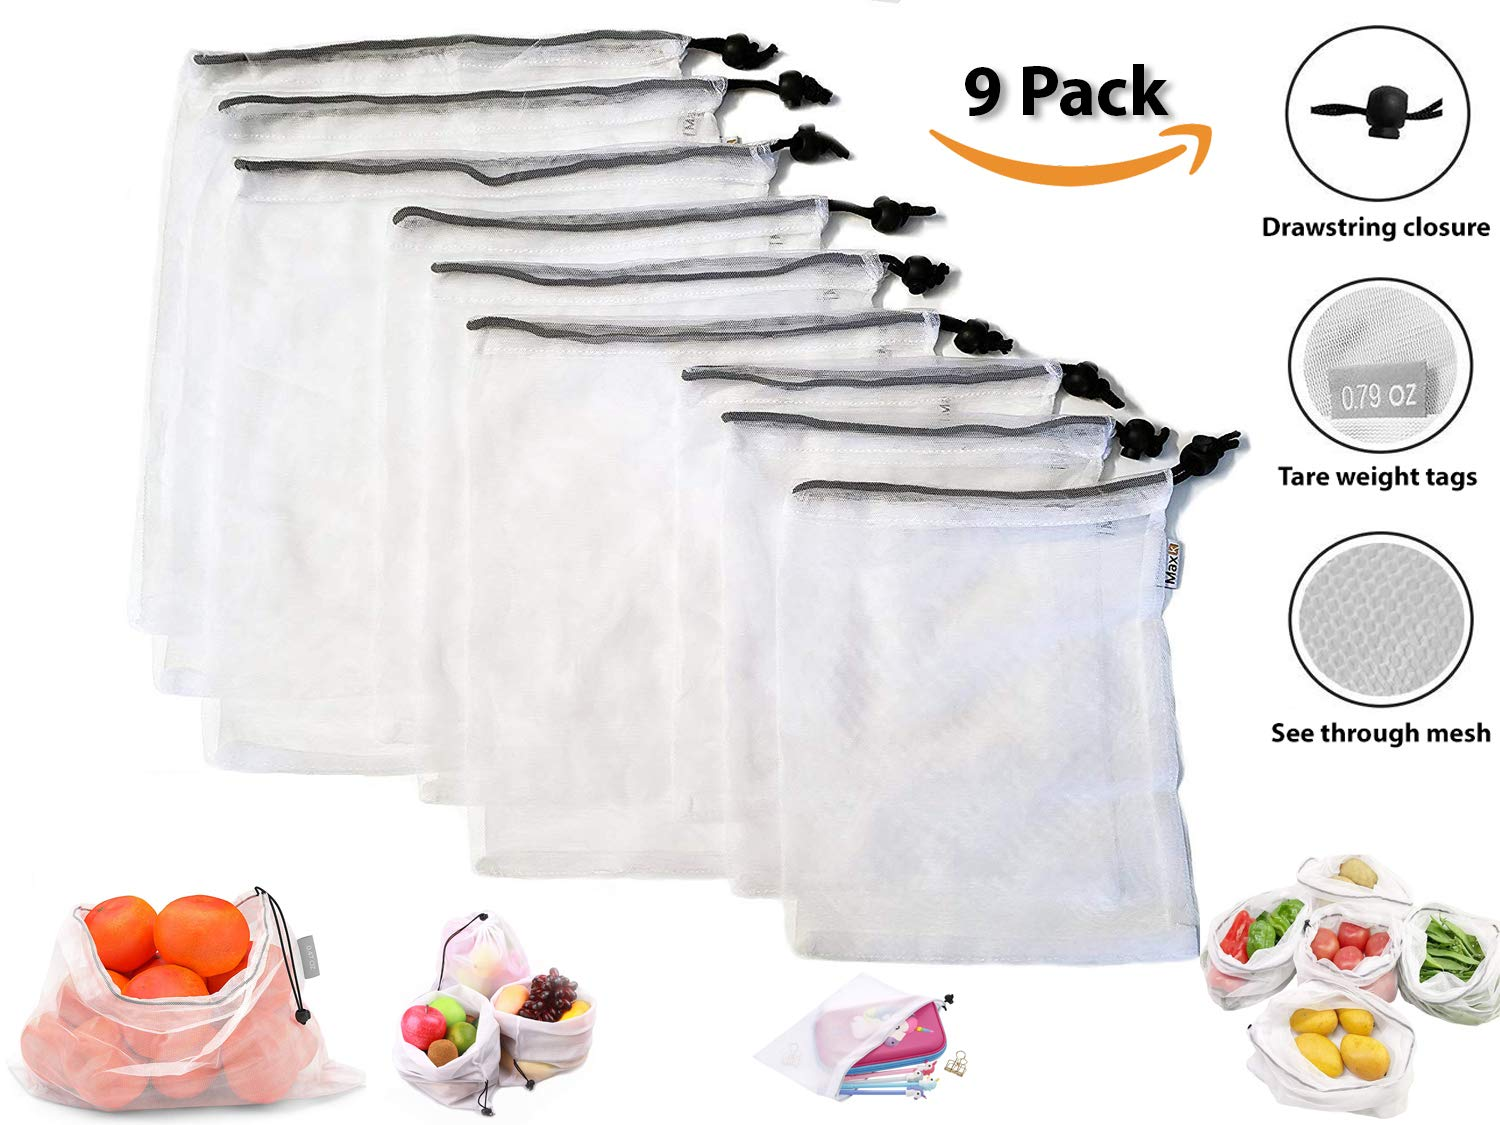 Superior Reusable Produce Bags | Ultra Light, Super Strong w/Double Stitched Seams | See-Through and Machine Washable Mesh | For Fruits, Vegetable, Grocery, Food, Toys, Storage | 9 Pack Max K